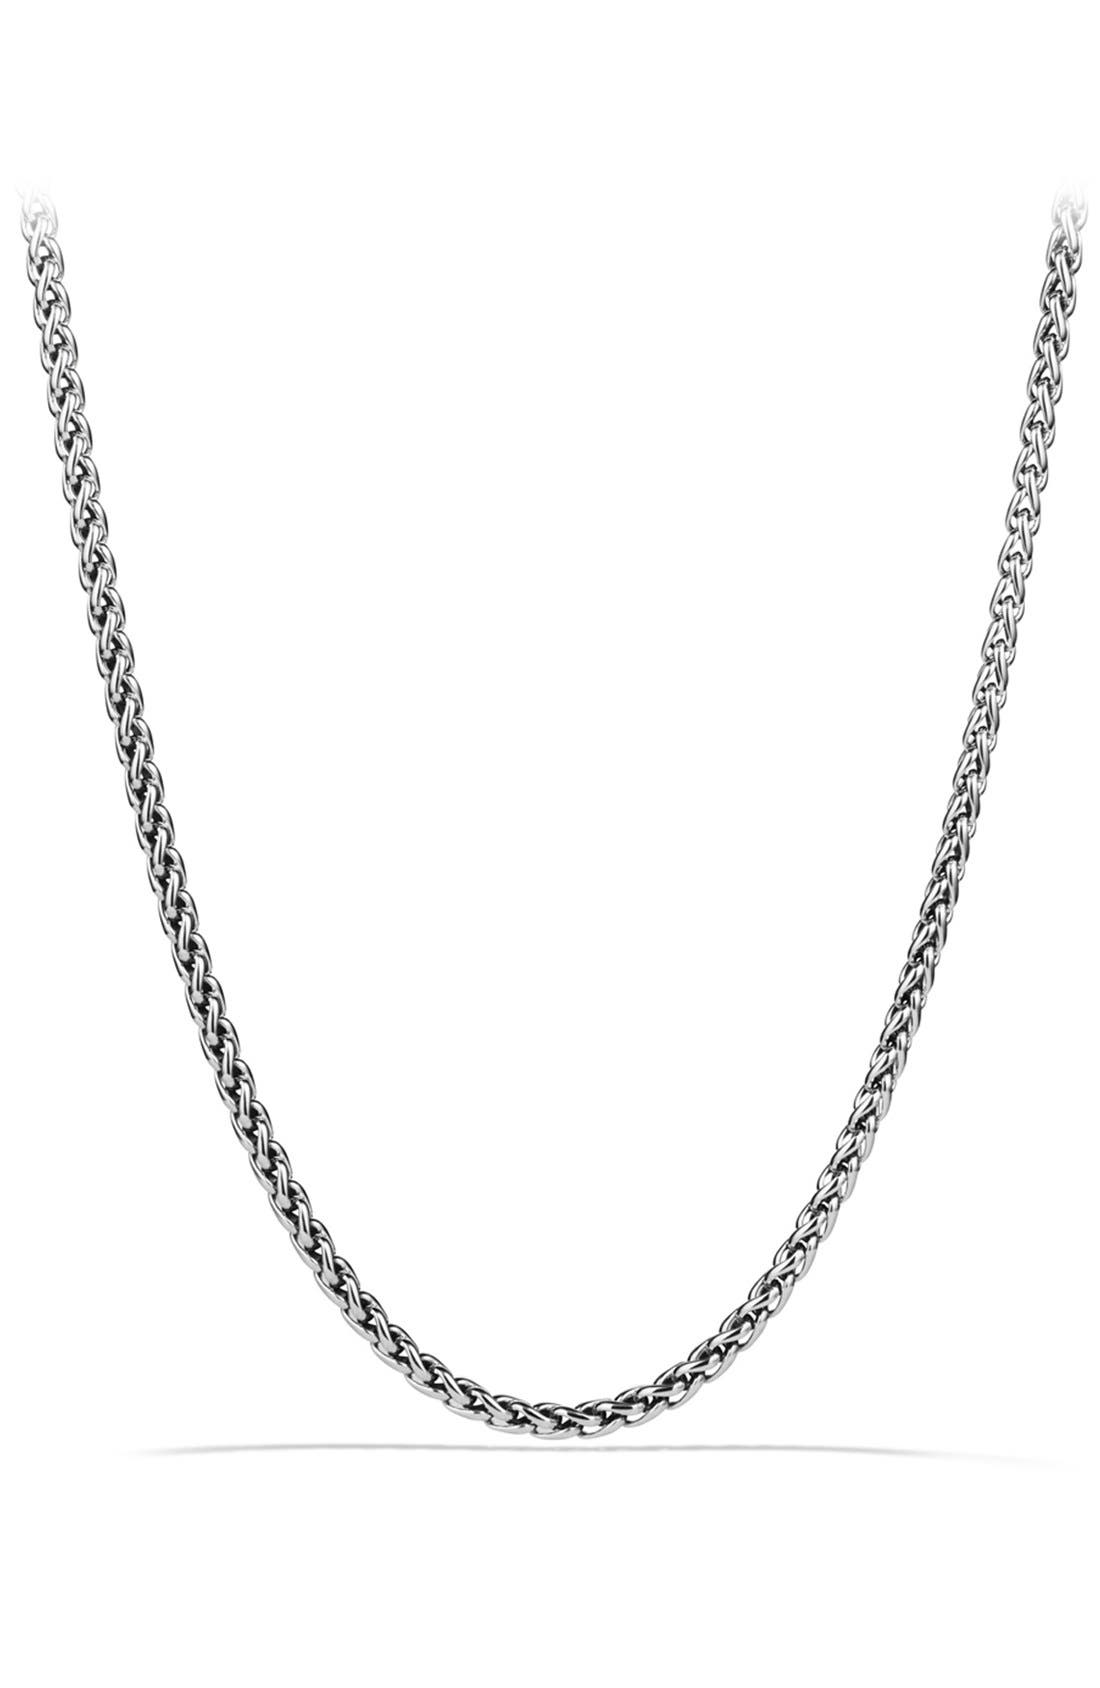 Main Image - David Yurman 'Chain' Wheat Link Necklace